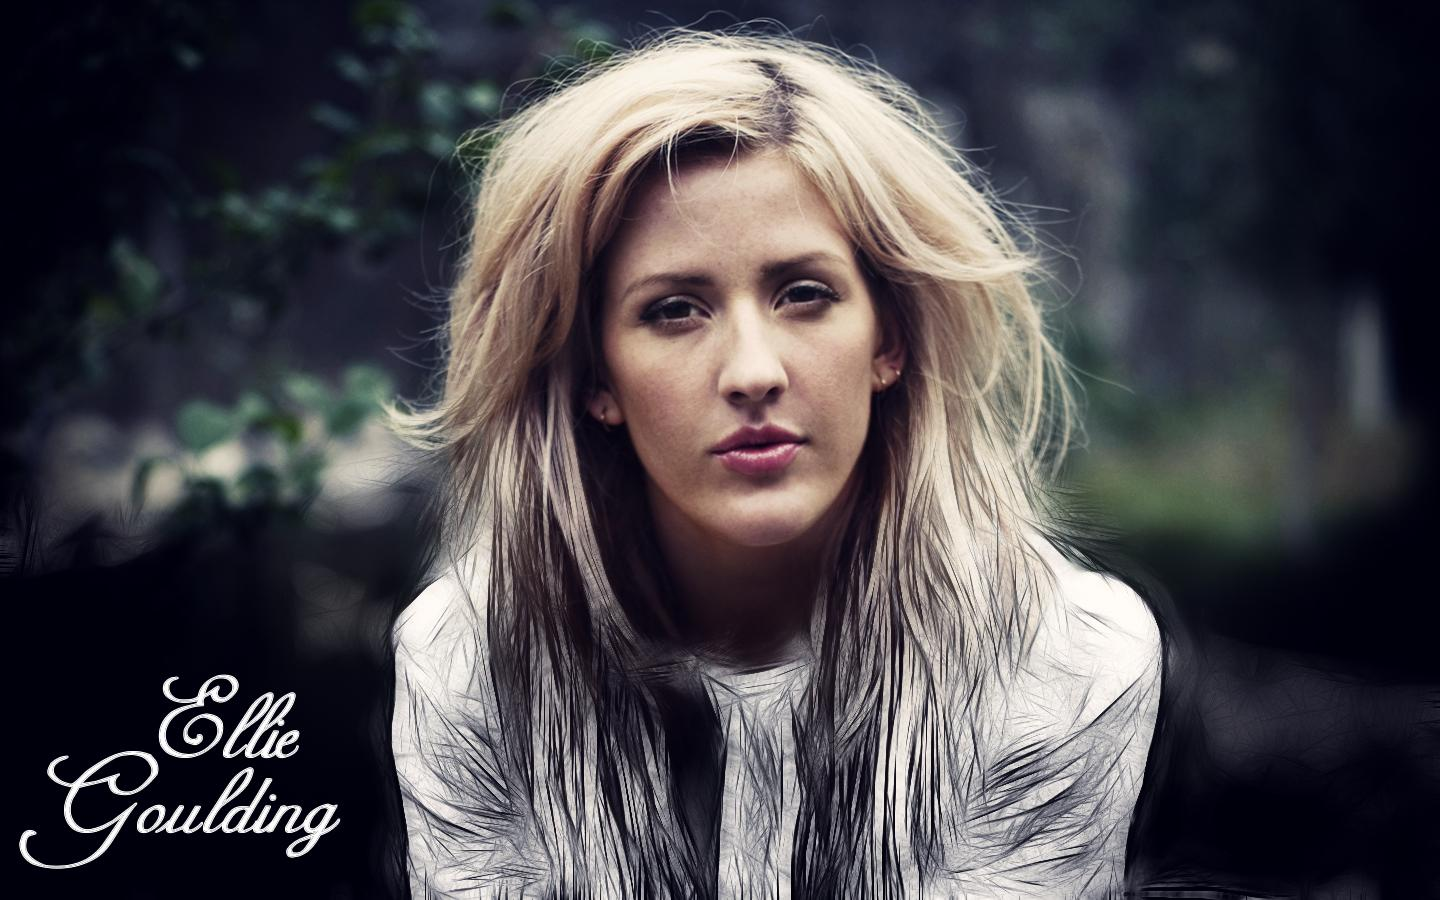 Ellie Goulding Wallpapers High Resolution And Quality Download